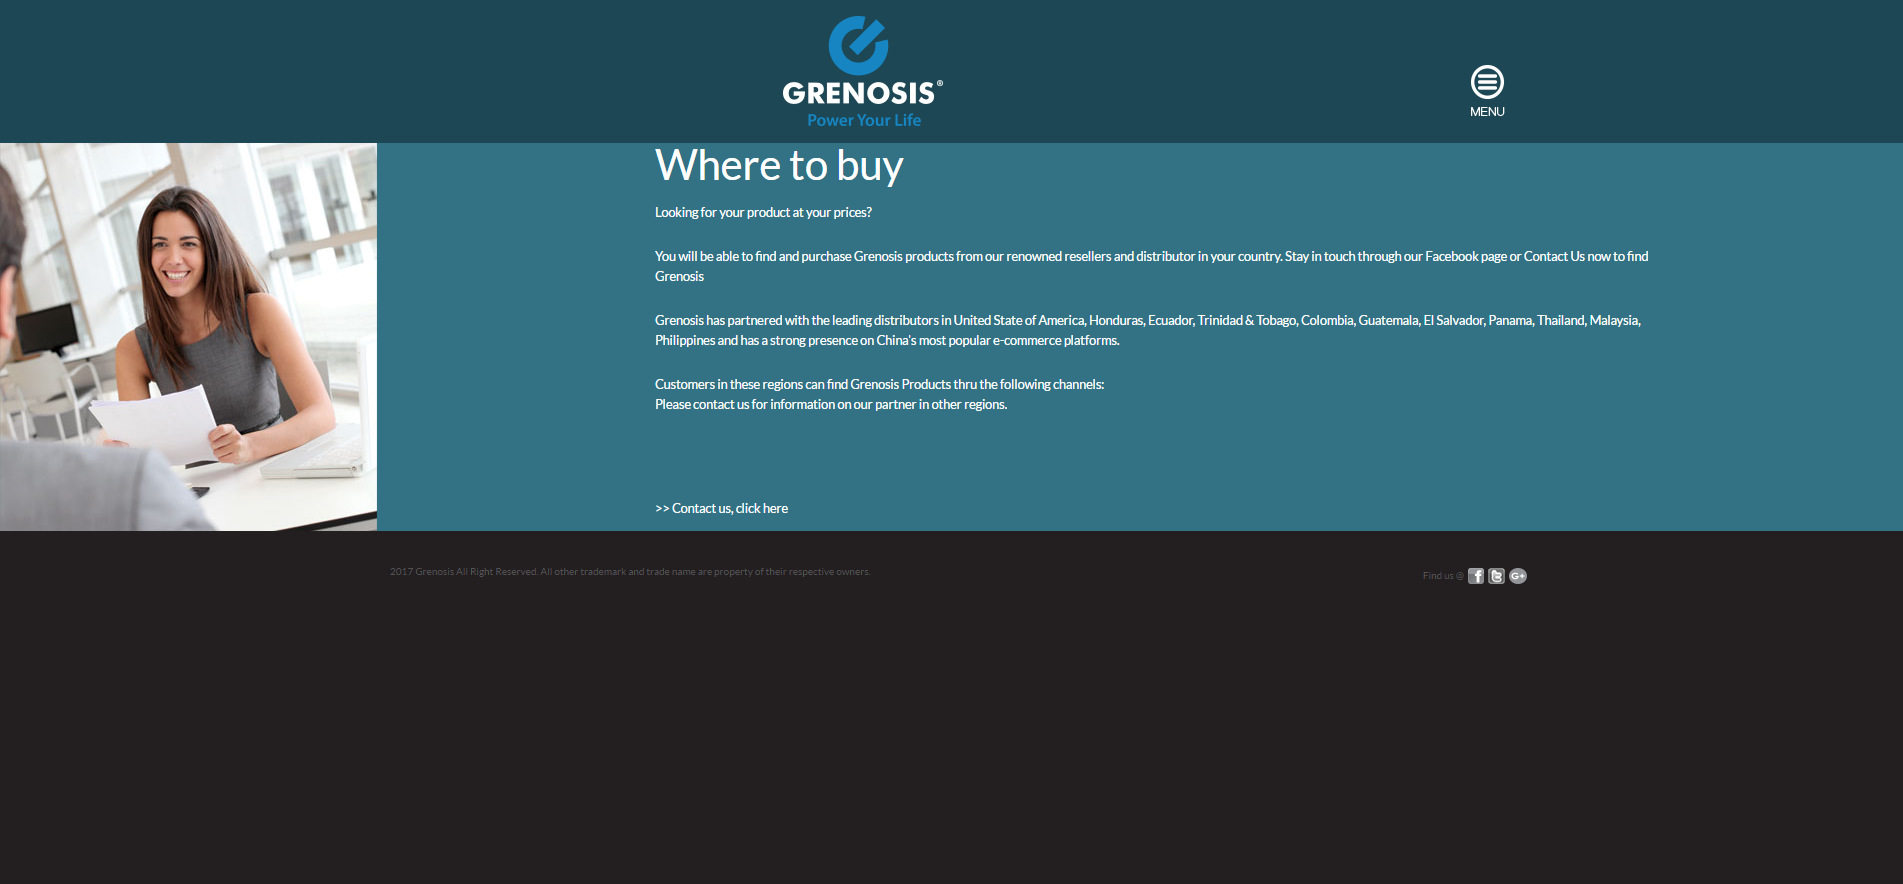 GRENOSIS - where to buy